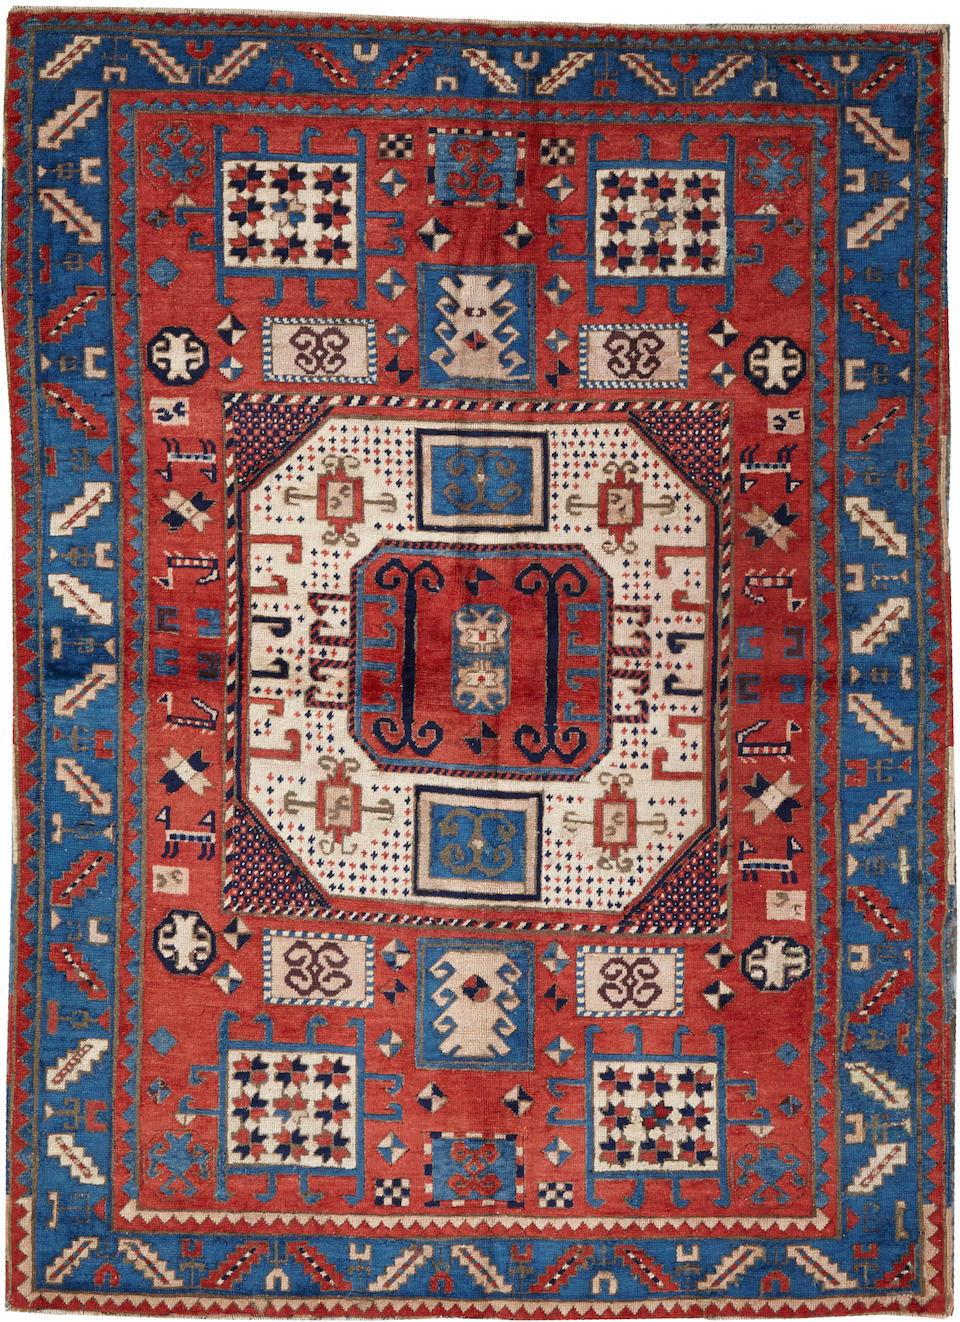 Bonhams : A Kazak rug Caucasus size approximately 4ft. 7in. x 8ft.